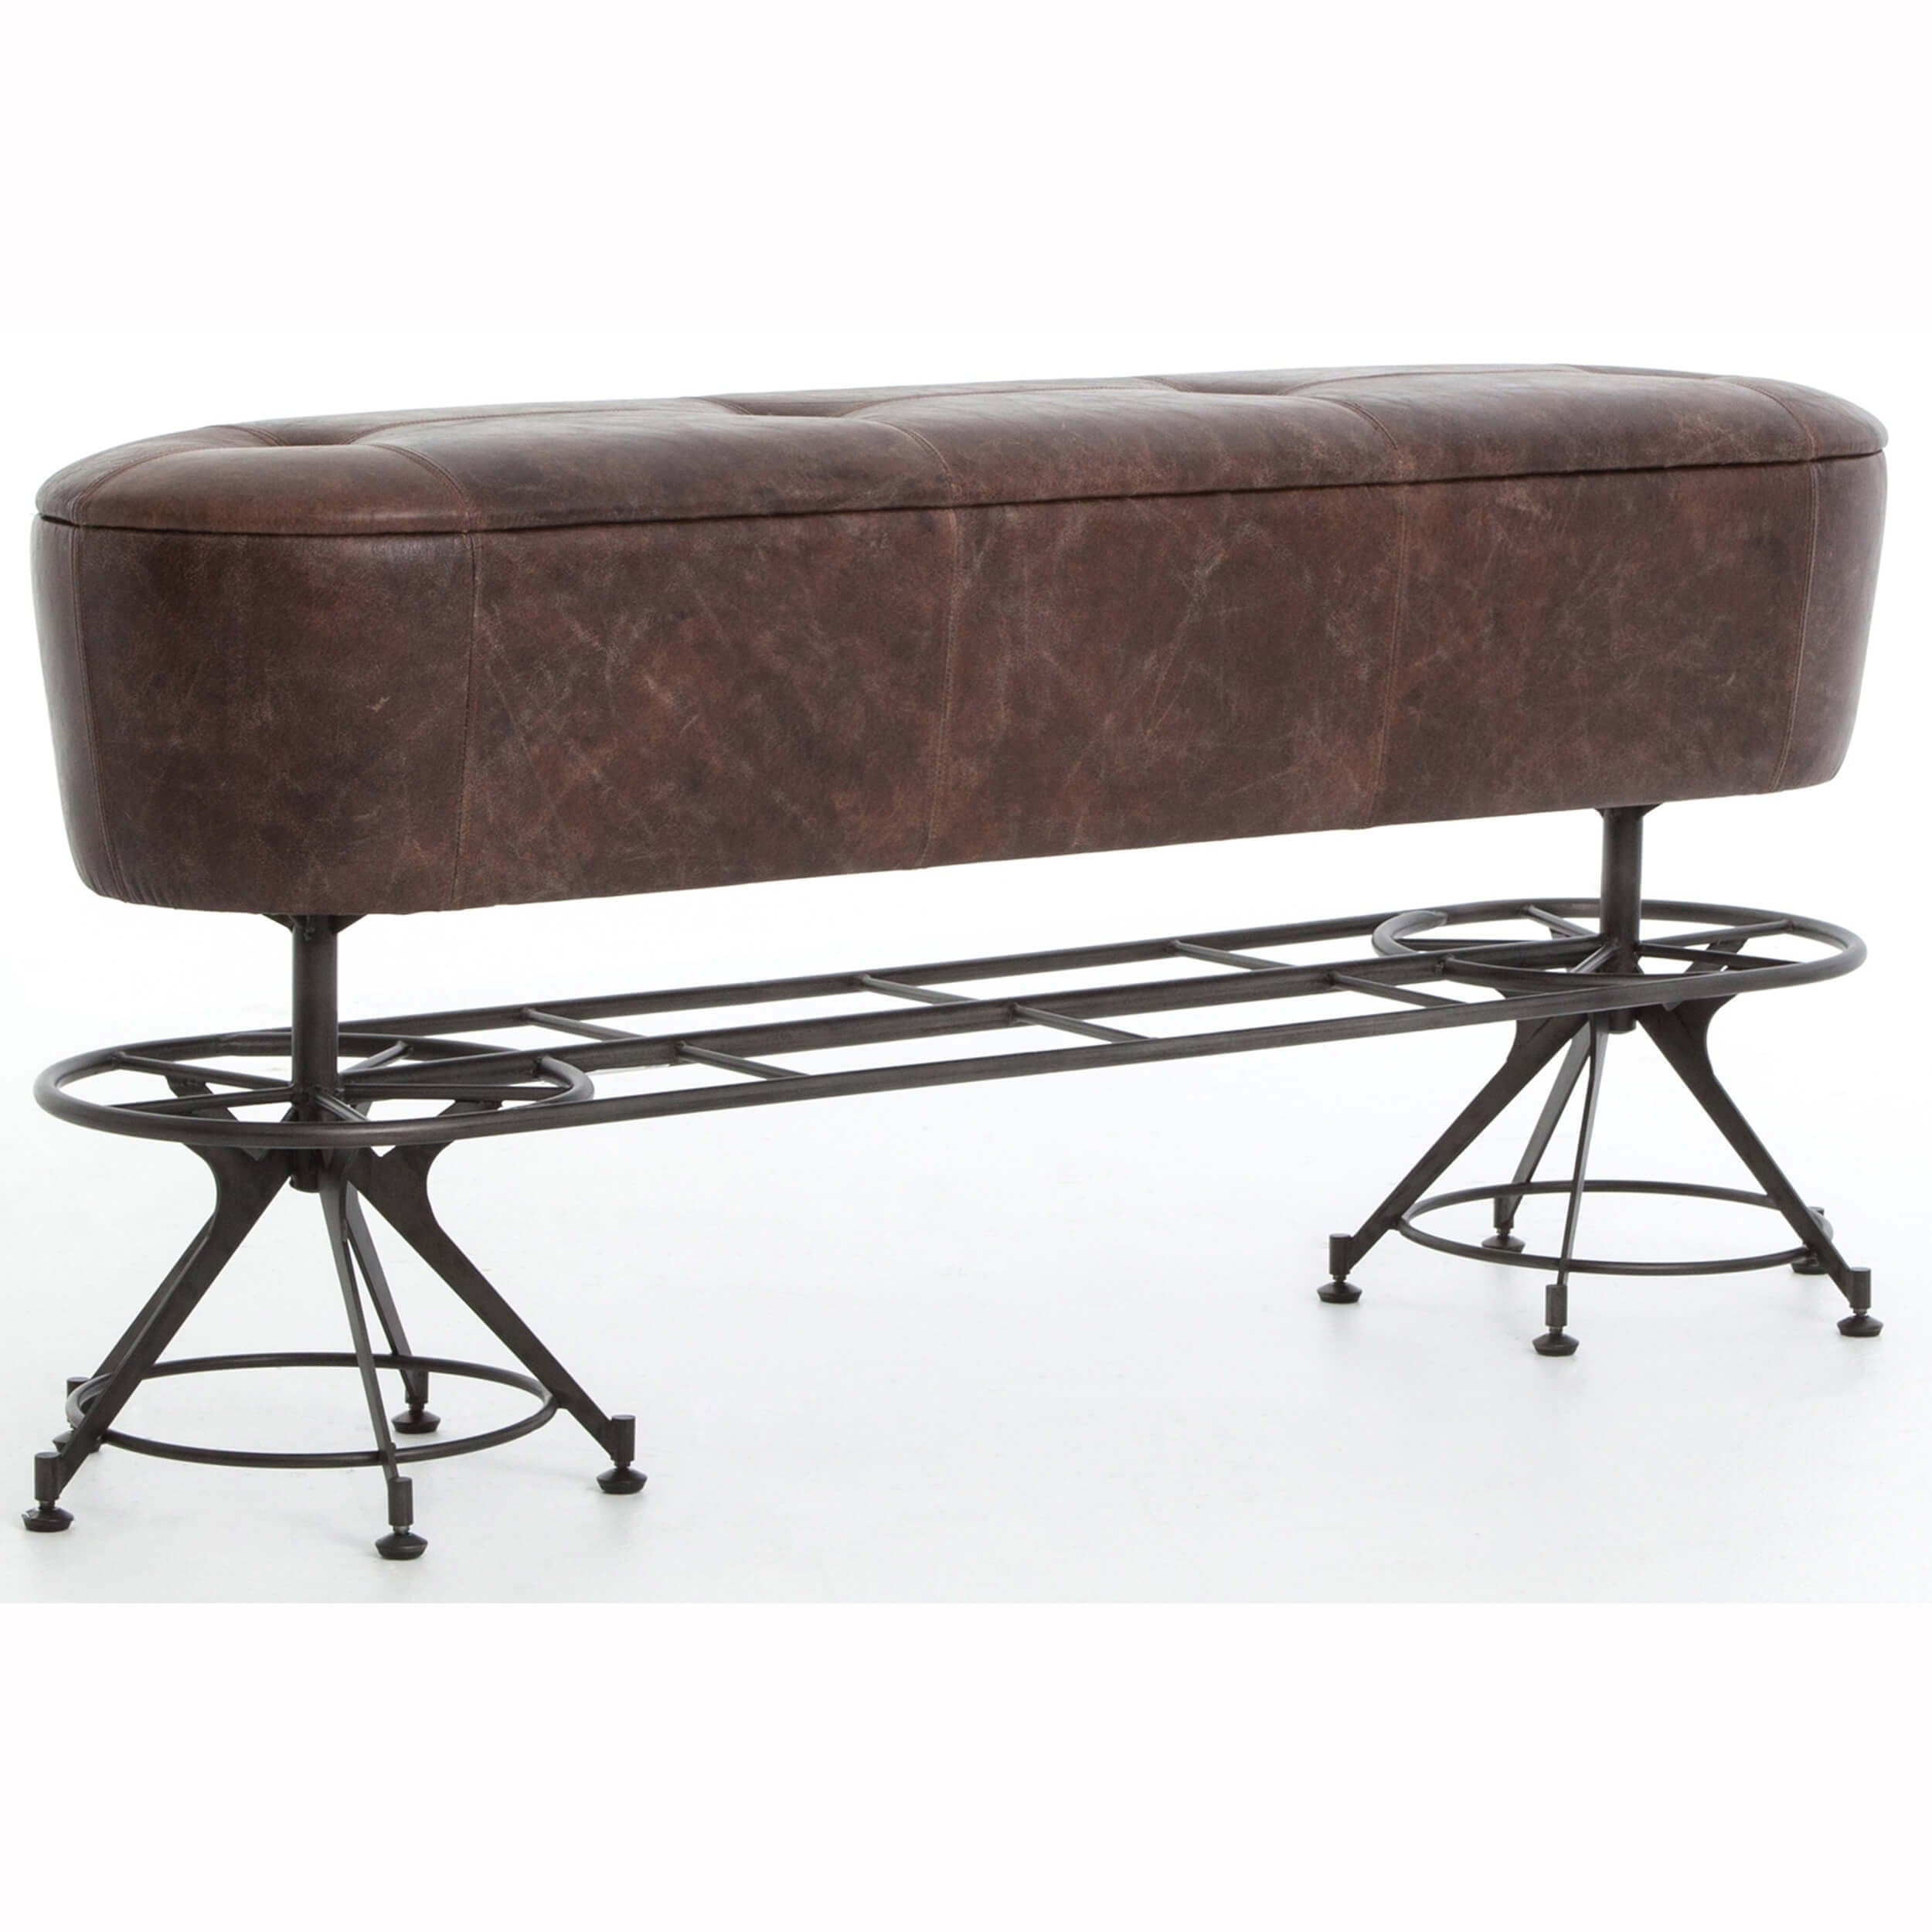 Surprising S Highfashionhome Com Products Tyler Leather Gmtry Best Dining Table And Chair Ideas Images Gmtryco